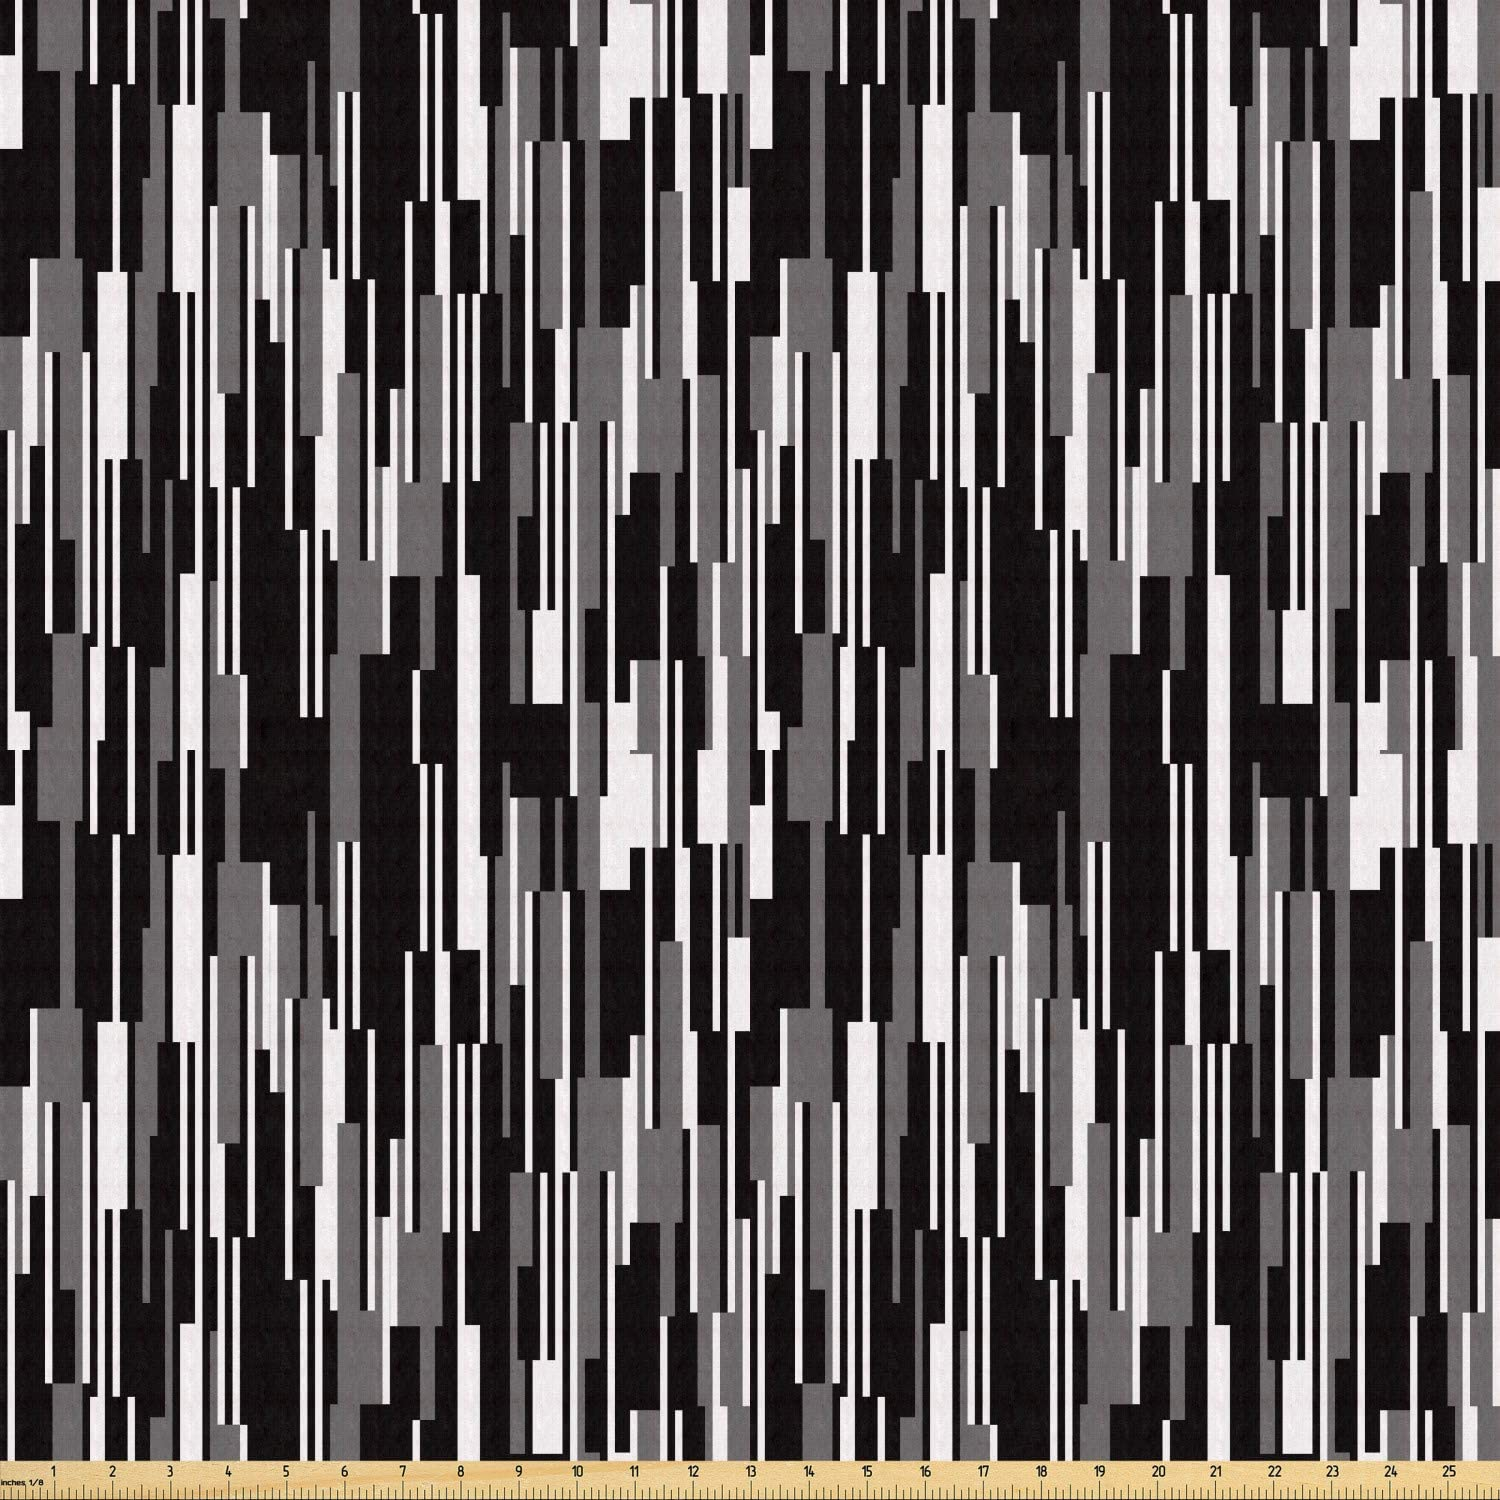 Ambesonne Black and White Fabric by The Yard, Barcode Pattern Abstraction Vertical Stripes in Grayscale Colors, Stretch Knit Fabric for Clothing Sewing and Arts Crafts, 5 Yards, Black Grey White